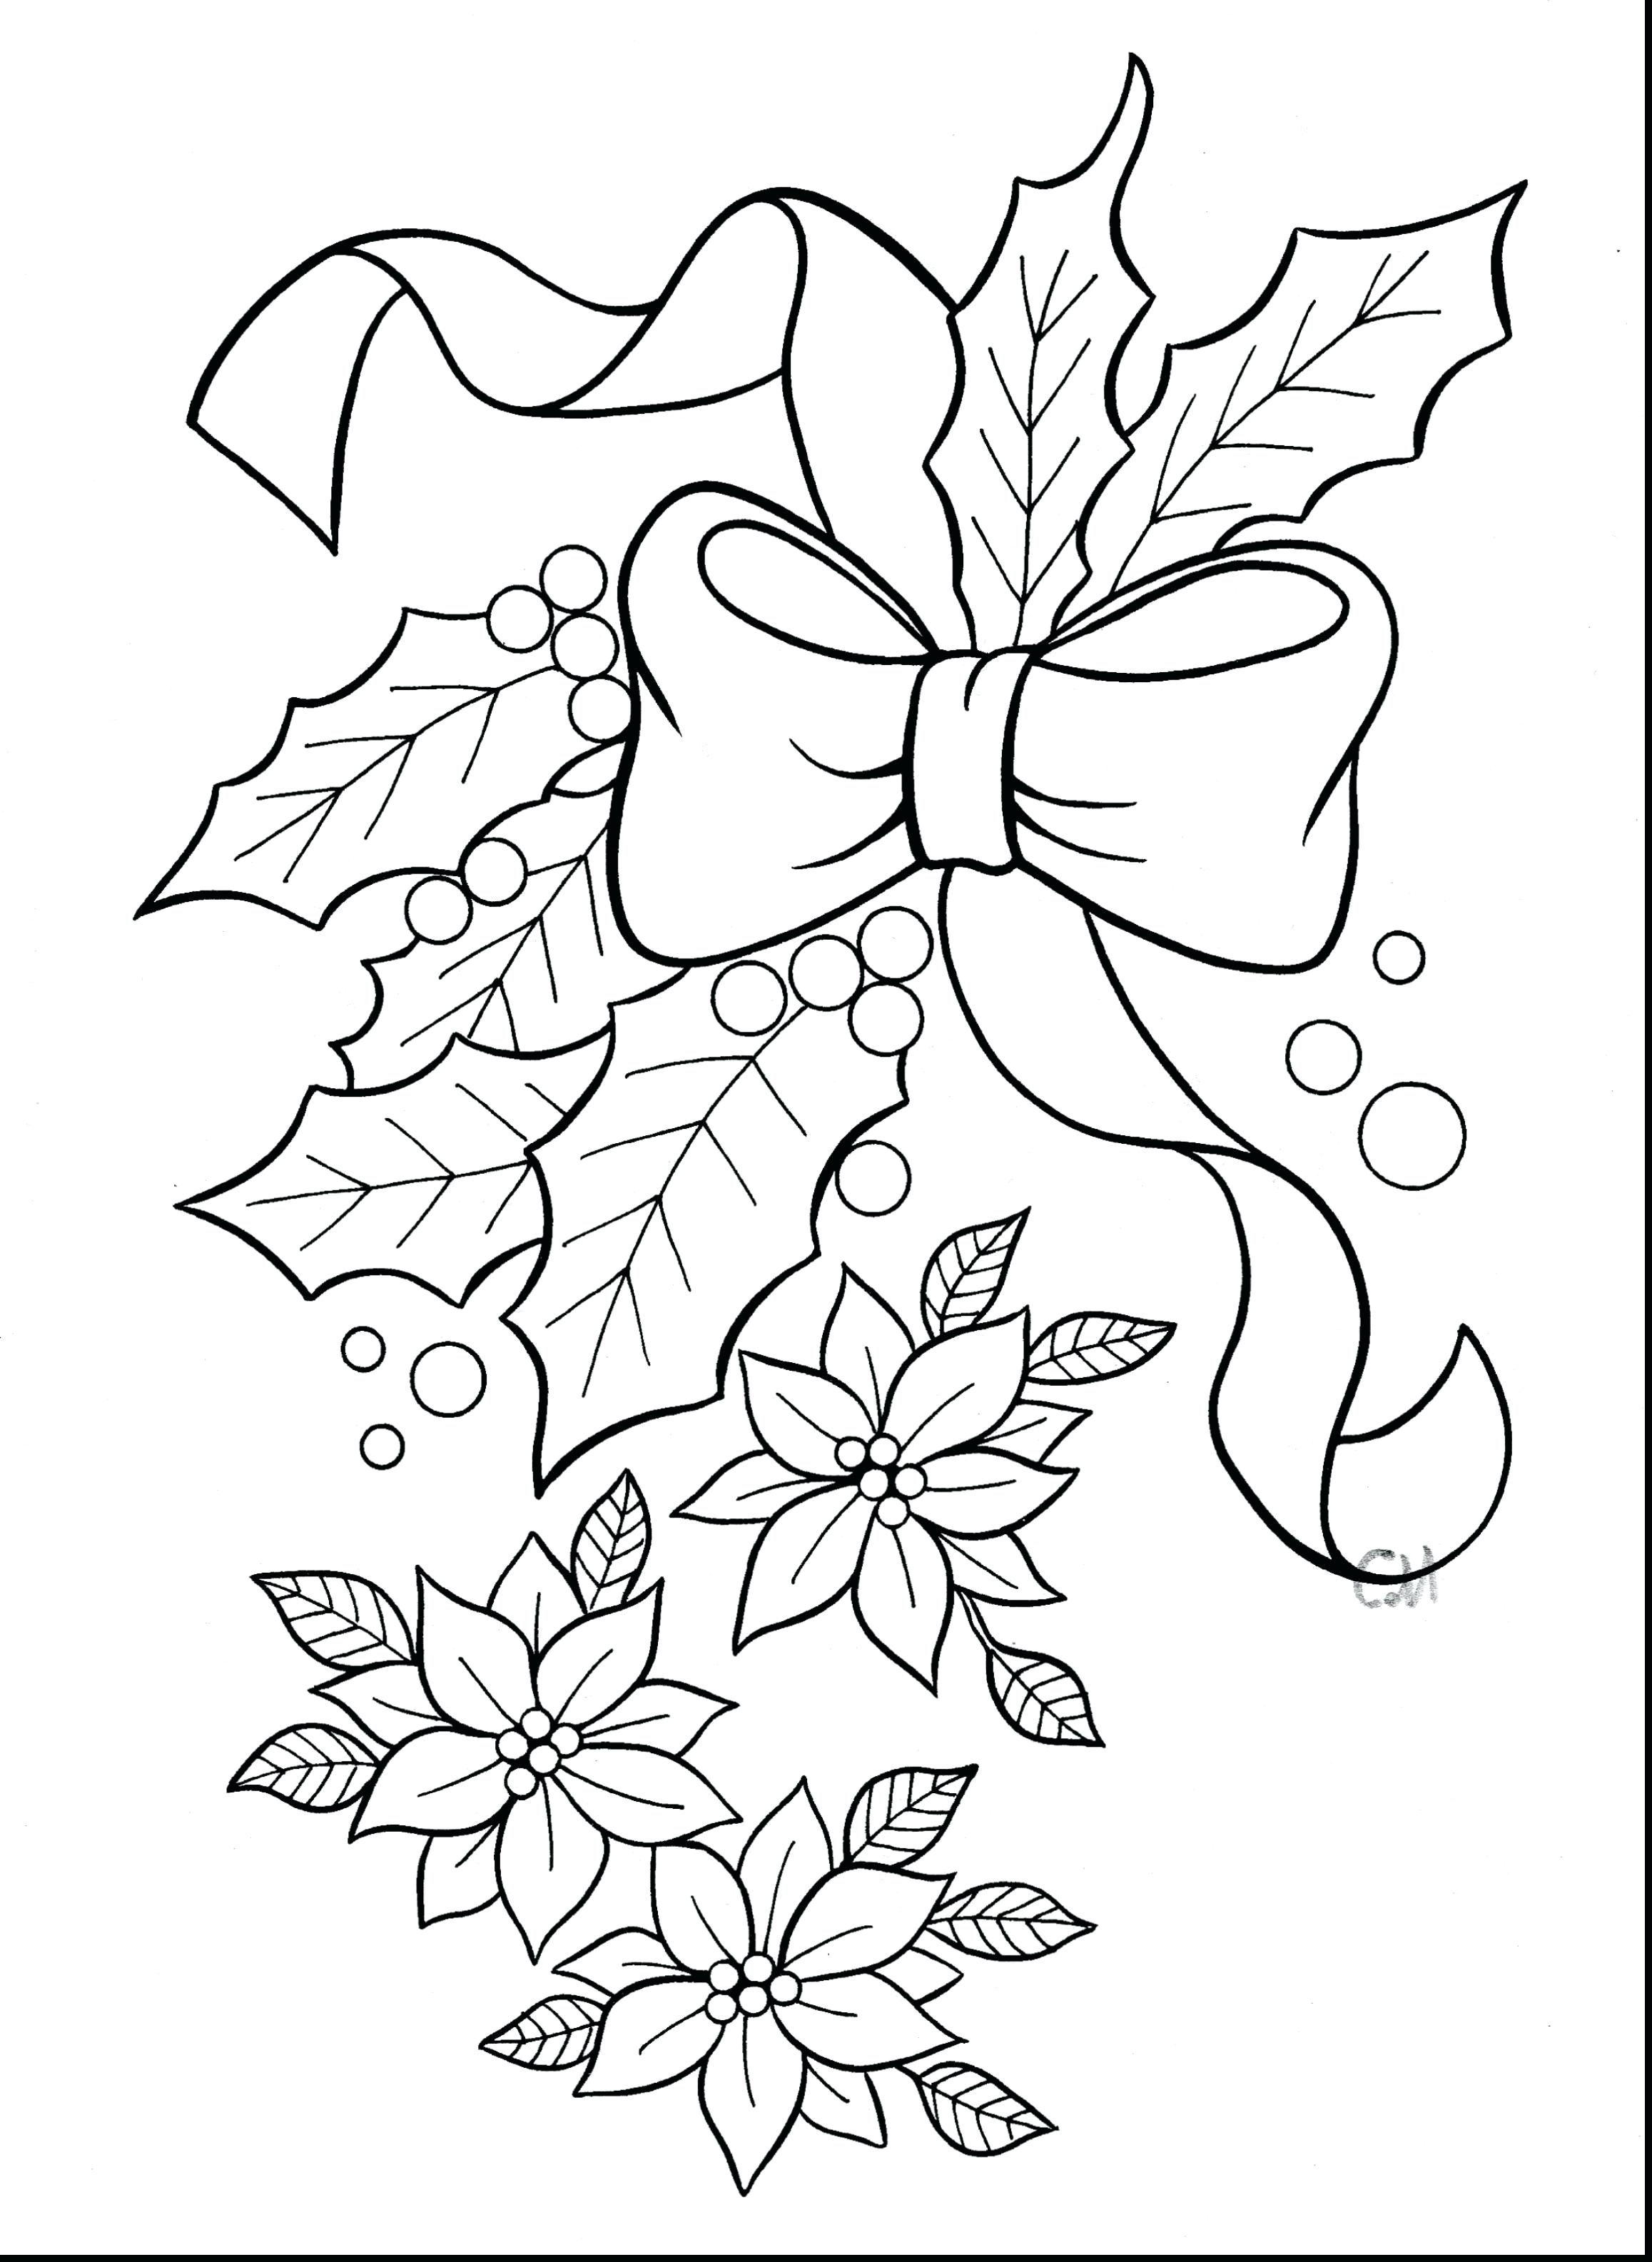 2315x3170 Coloring Christmas Wreaths Coloring Pages Wreath To Print